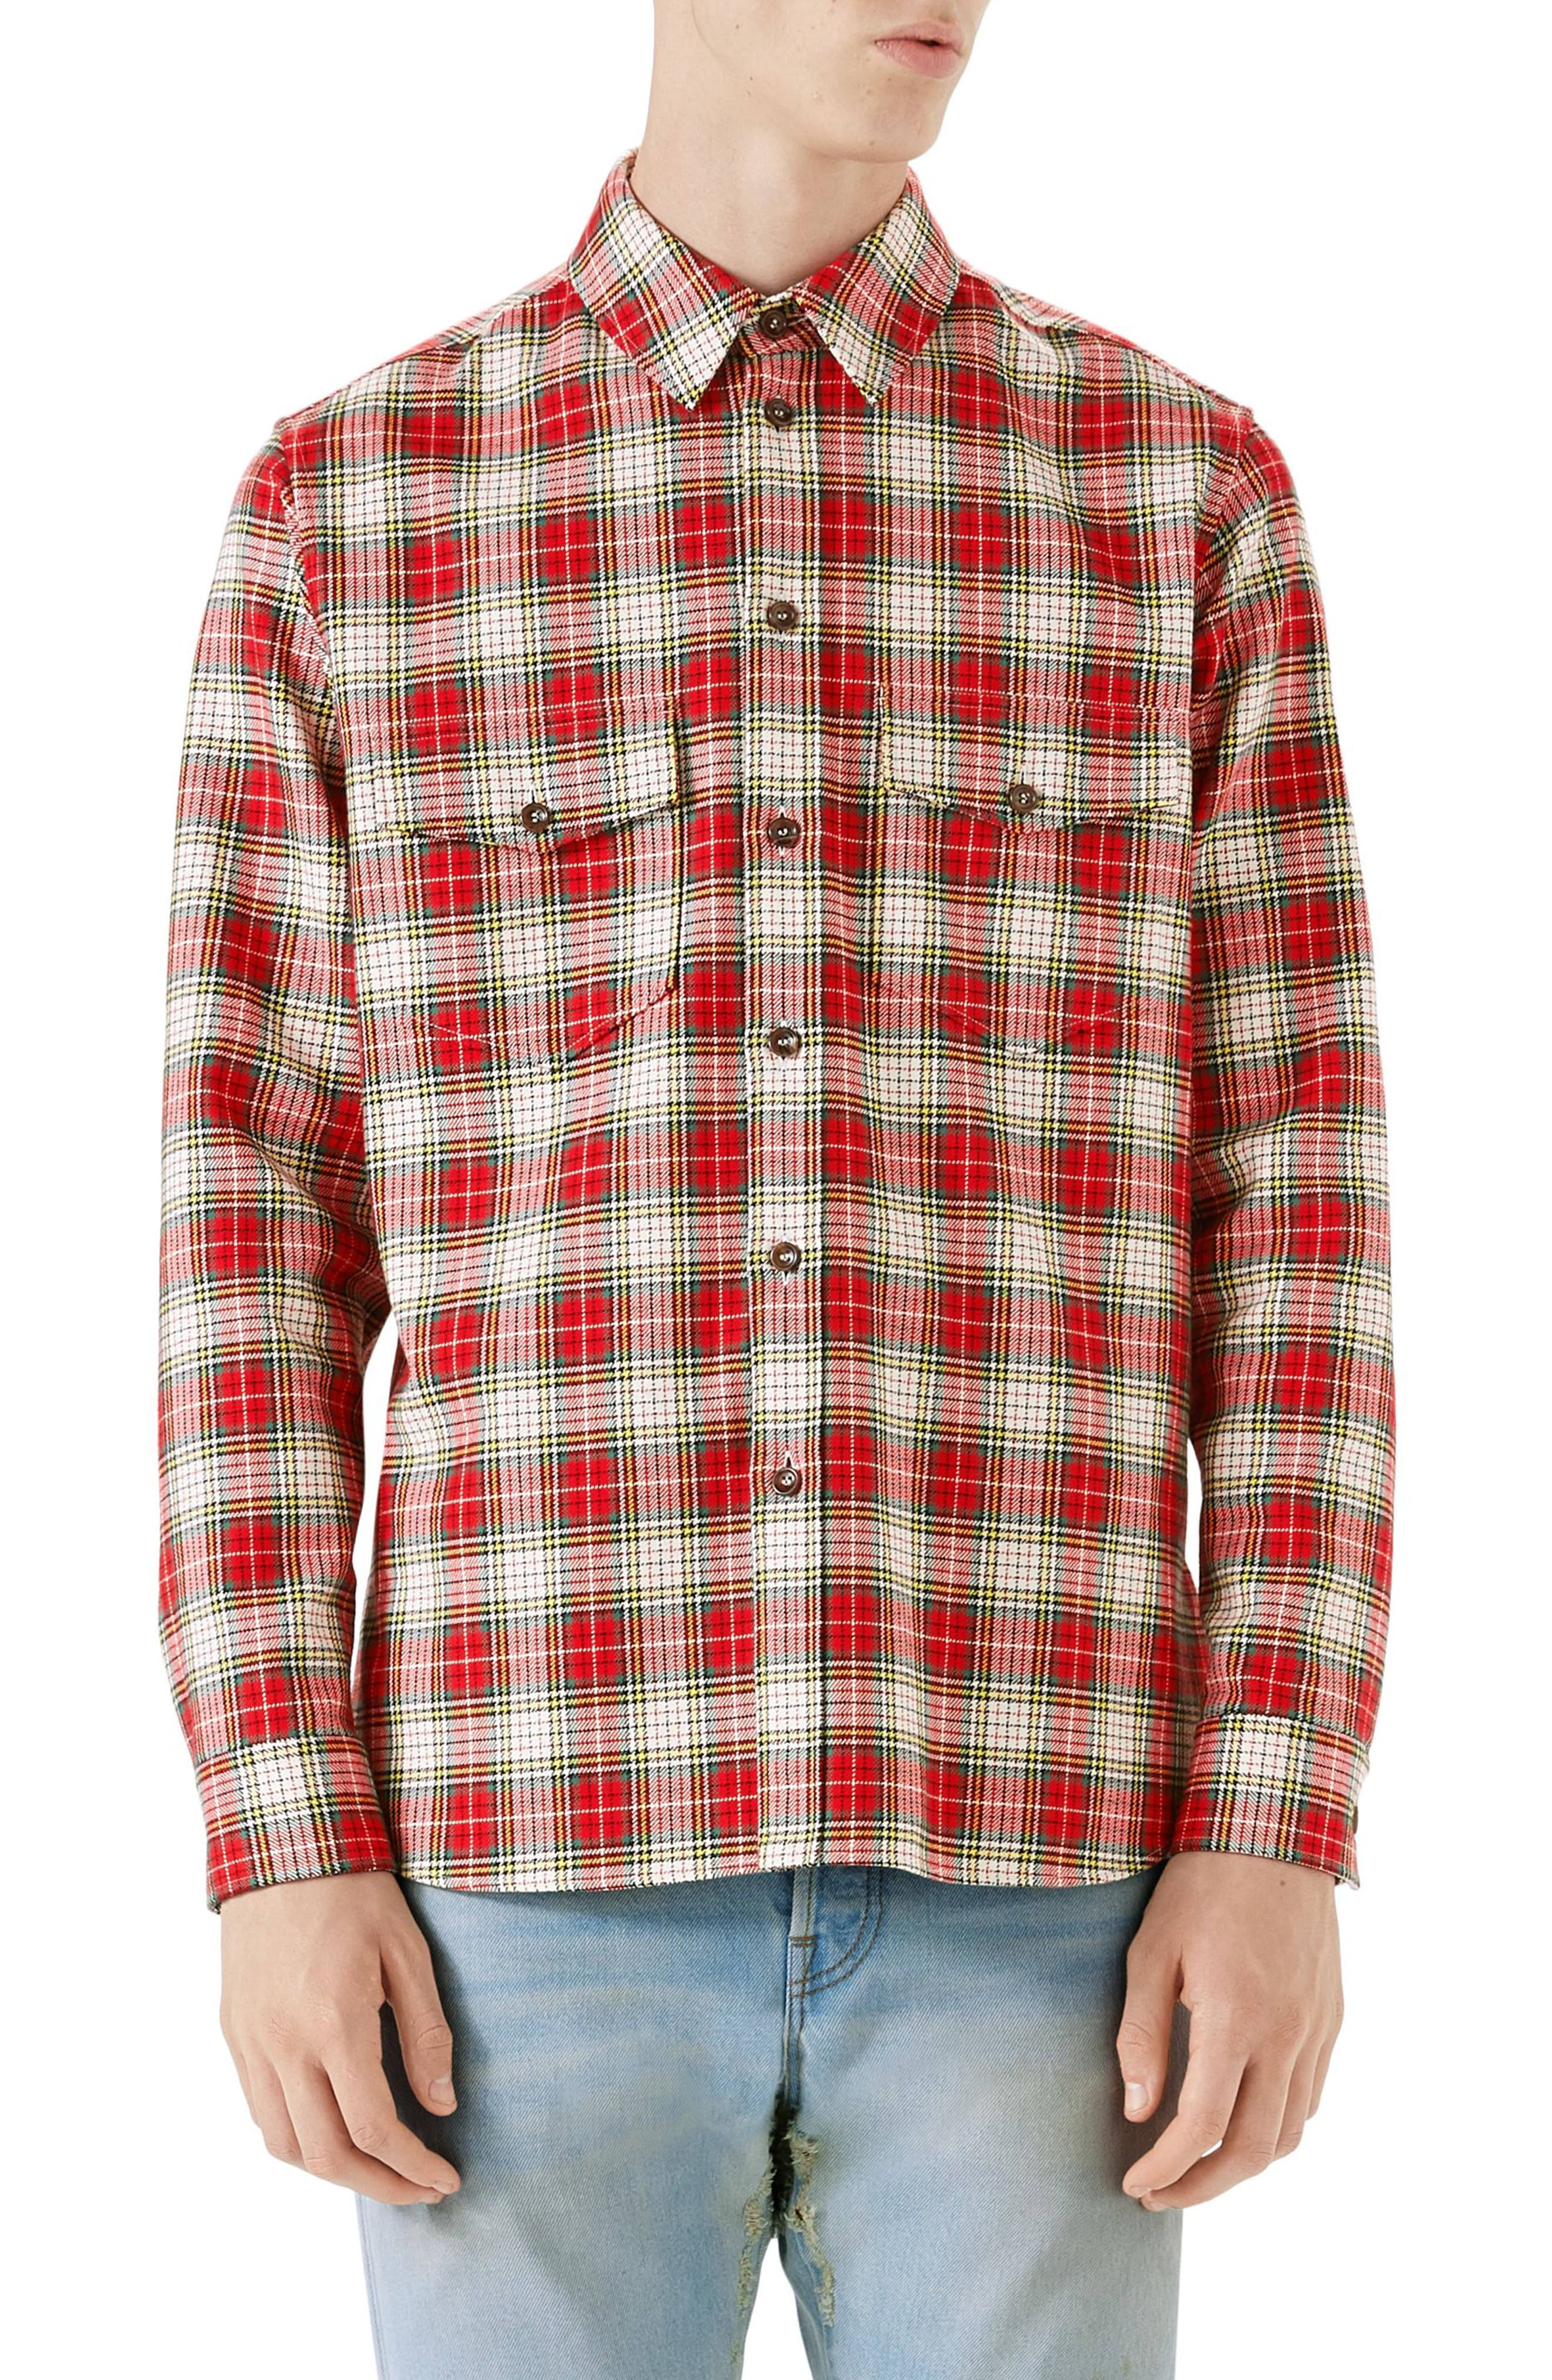 Embroidered Snake Oversize Plaid Shirt,                         Main,                         color, Red/Green